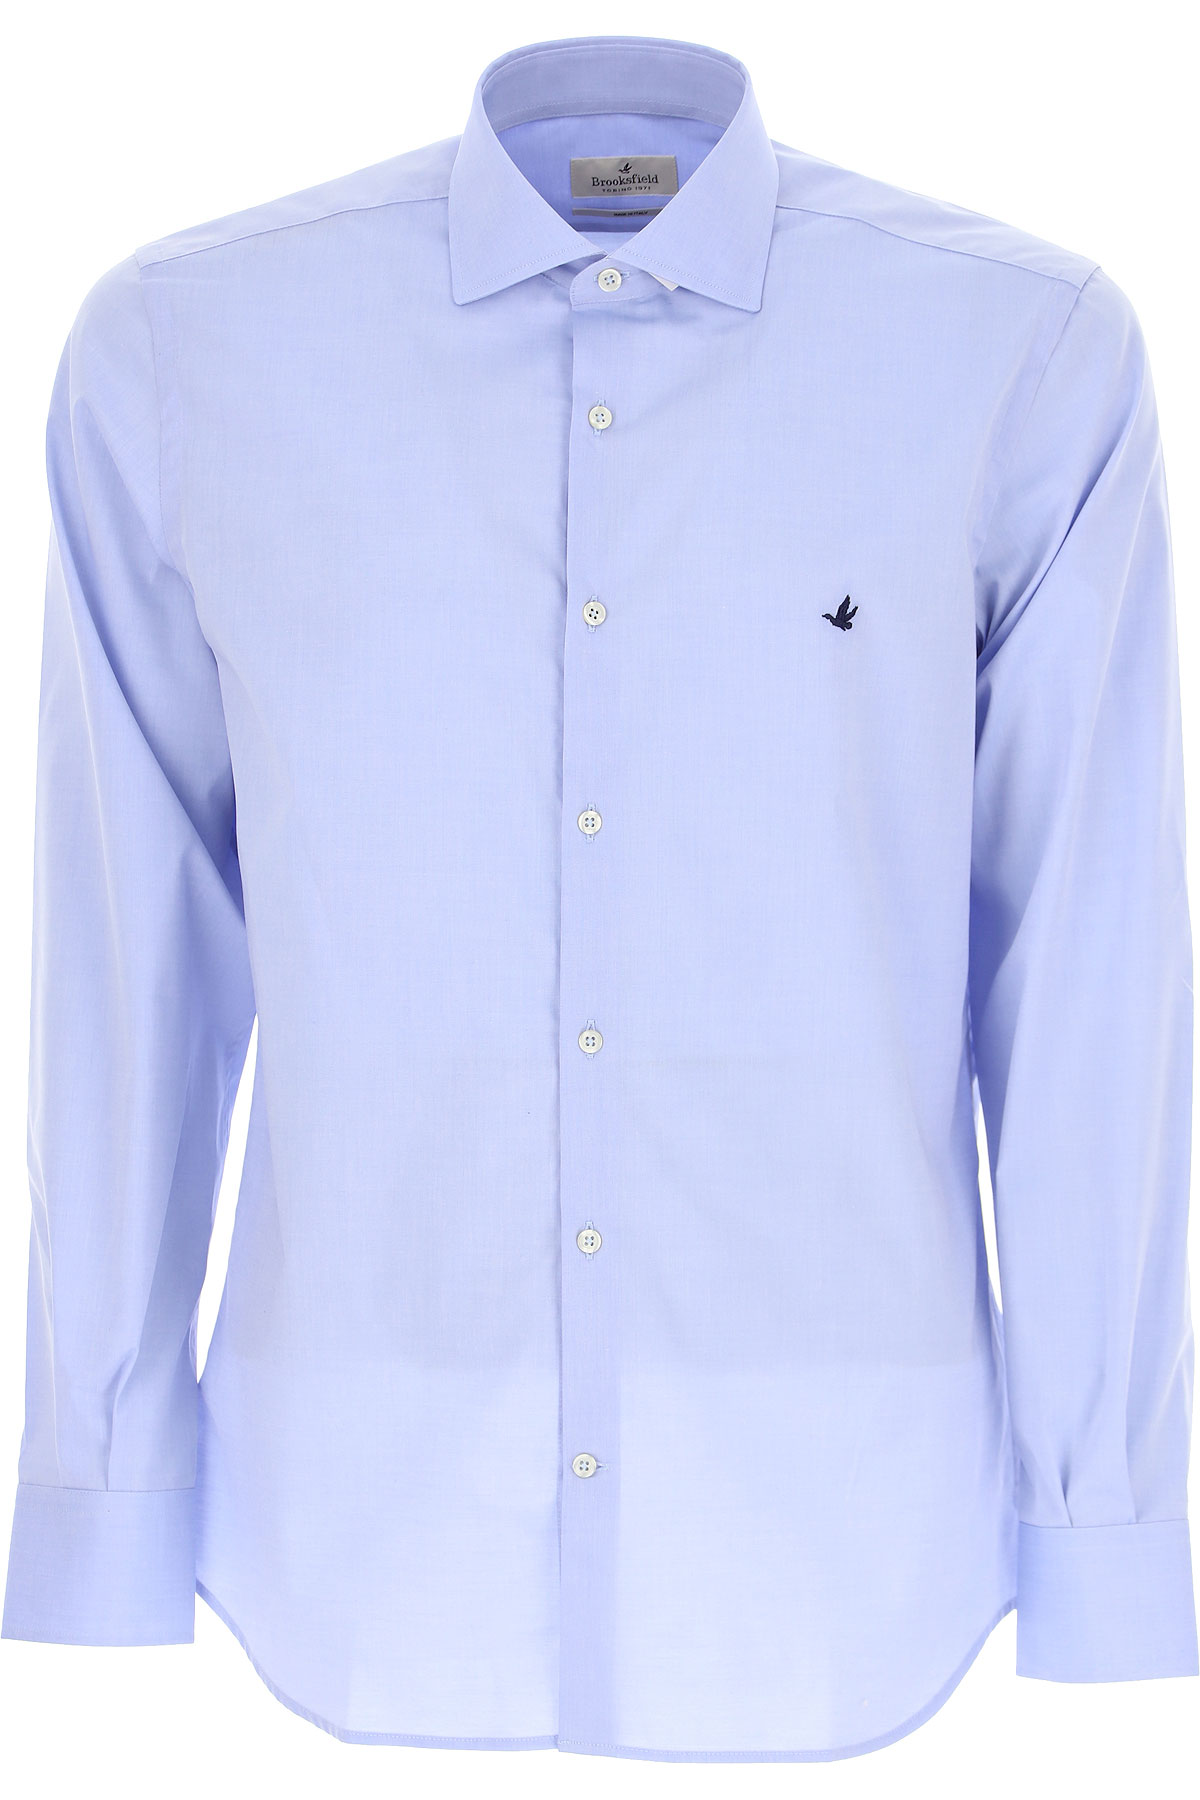 Brooksfield Shirt for Men On Sale, Light Pale Blue, Cotton, 2019, 15.5 15.75 16 16.5 17 17.5